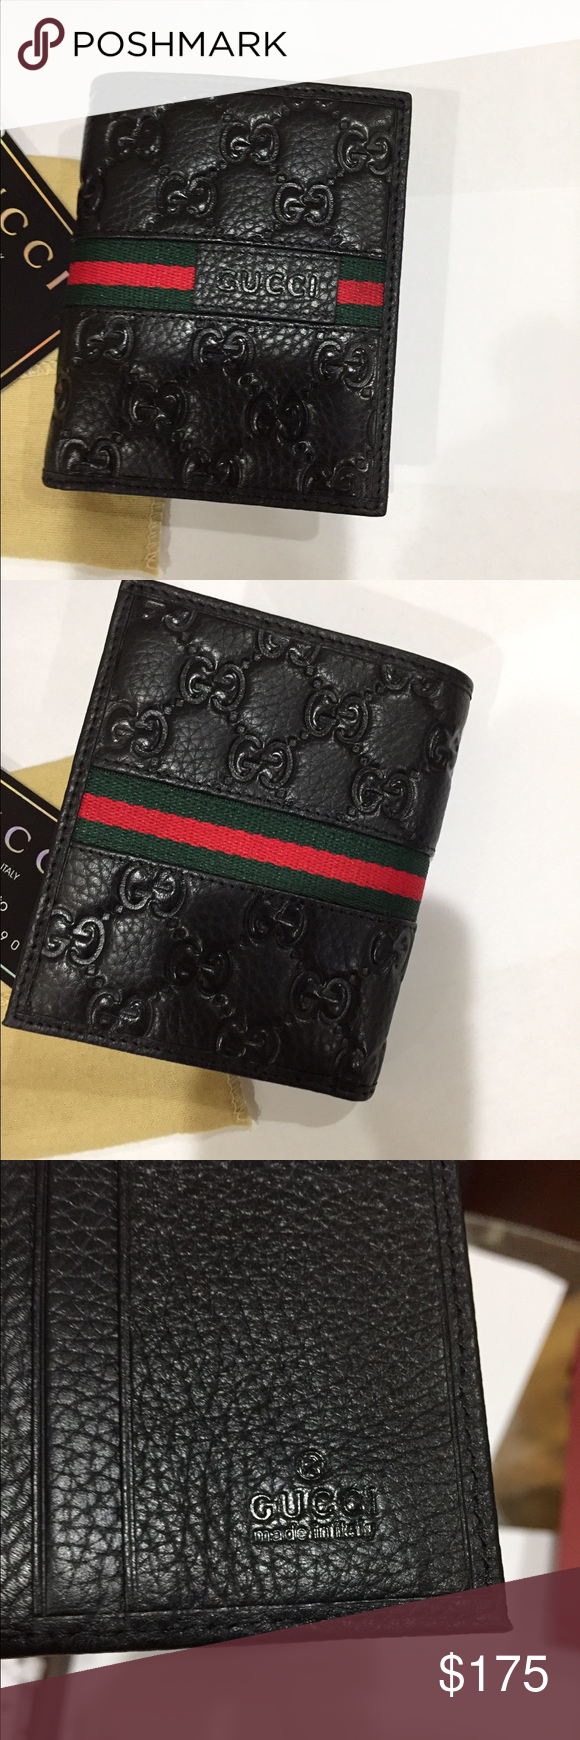 57bbd5efa72 Gucci Wallet New great quality comes with box Gucci Bags Wallets ...